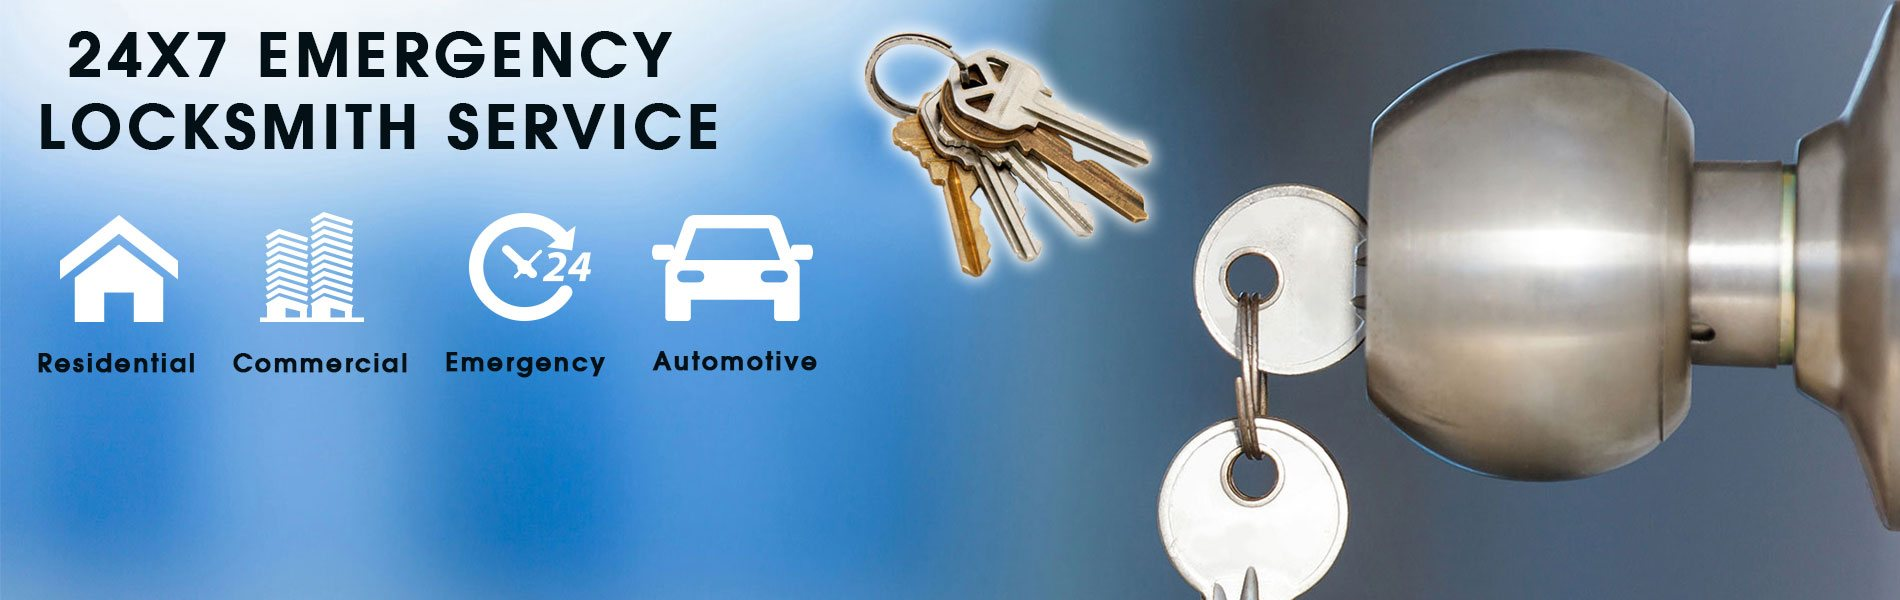 Golden Locksmith Services Cincinnati, OH 513-394-6228